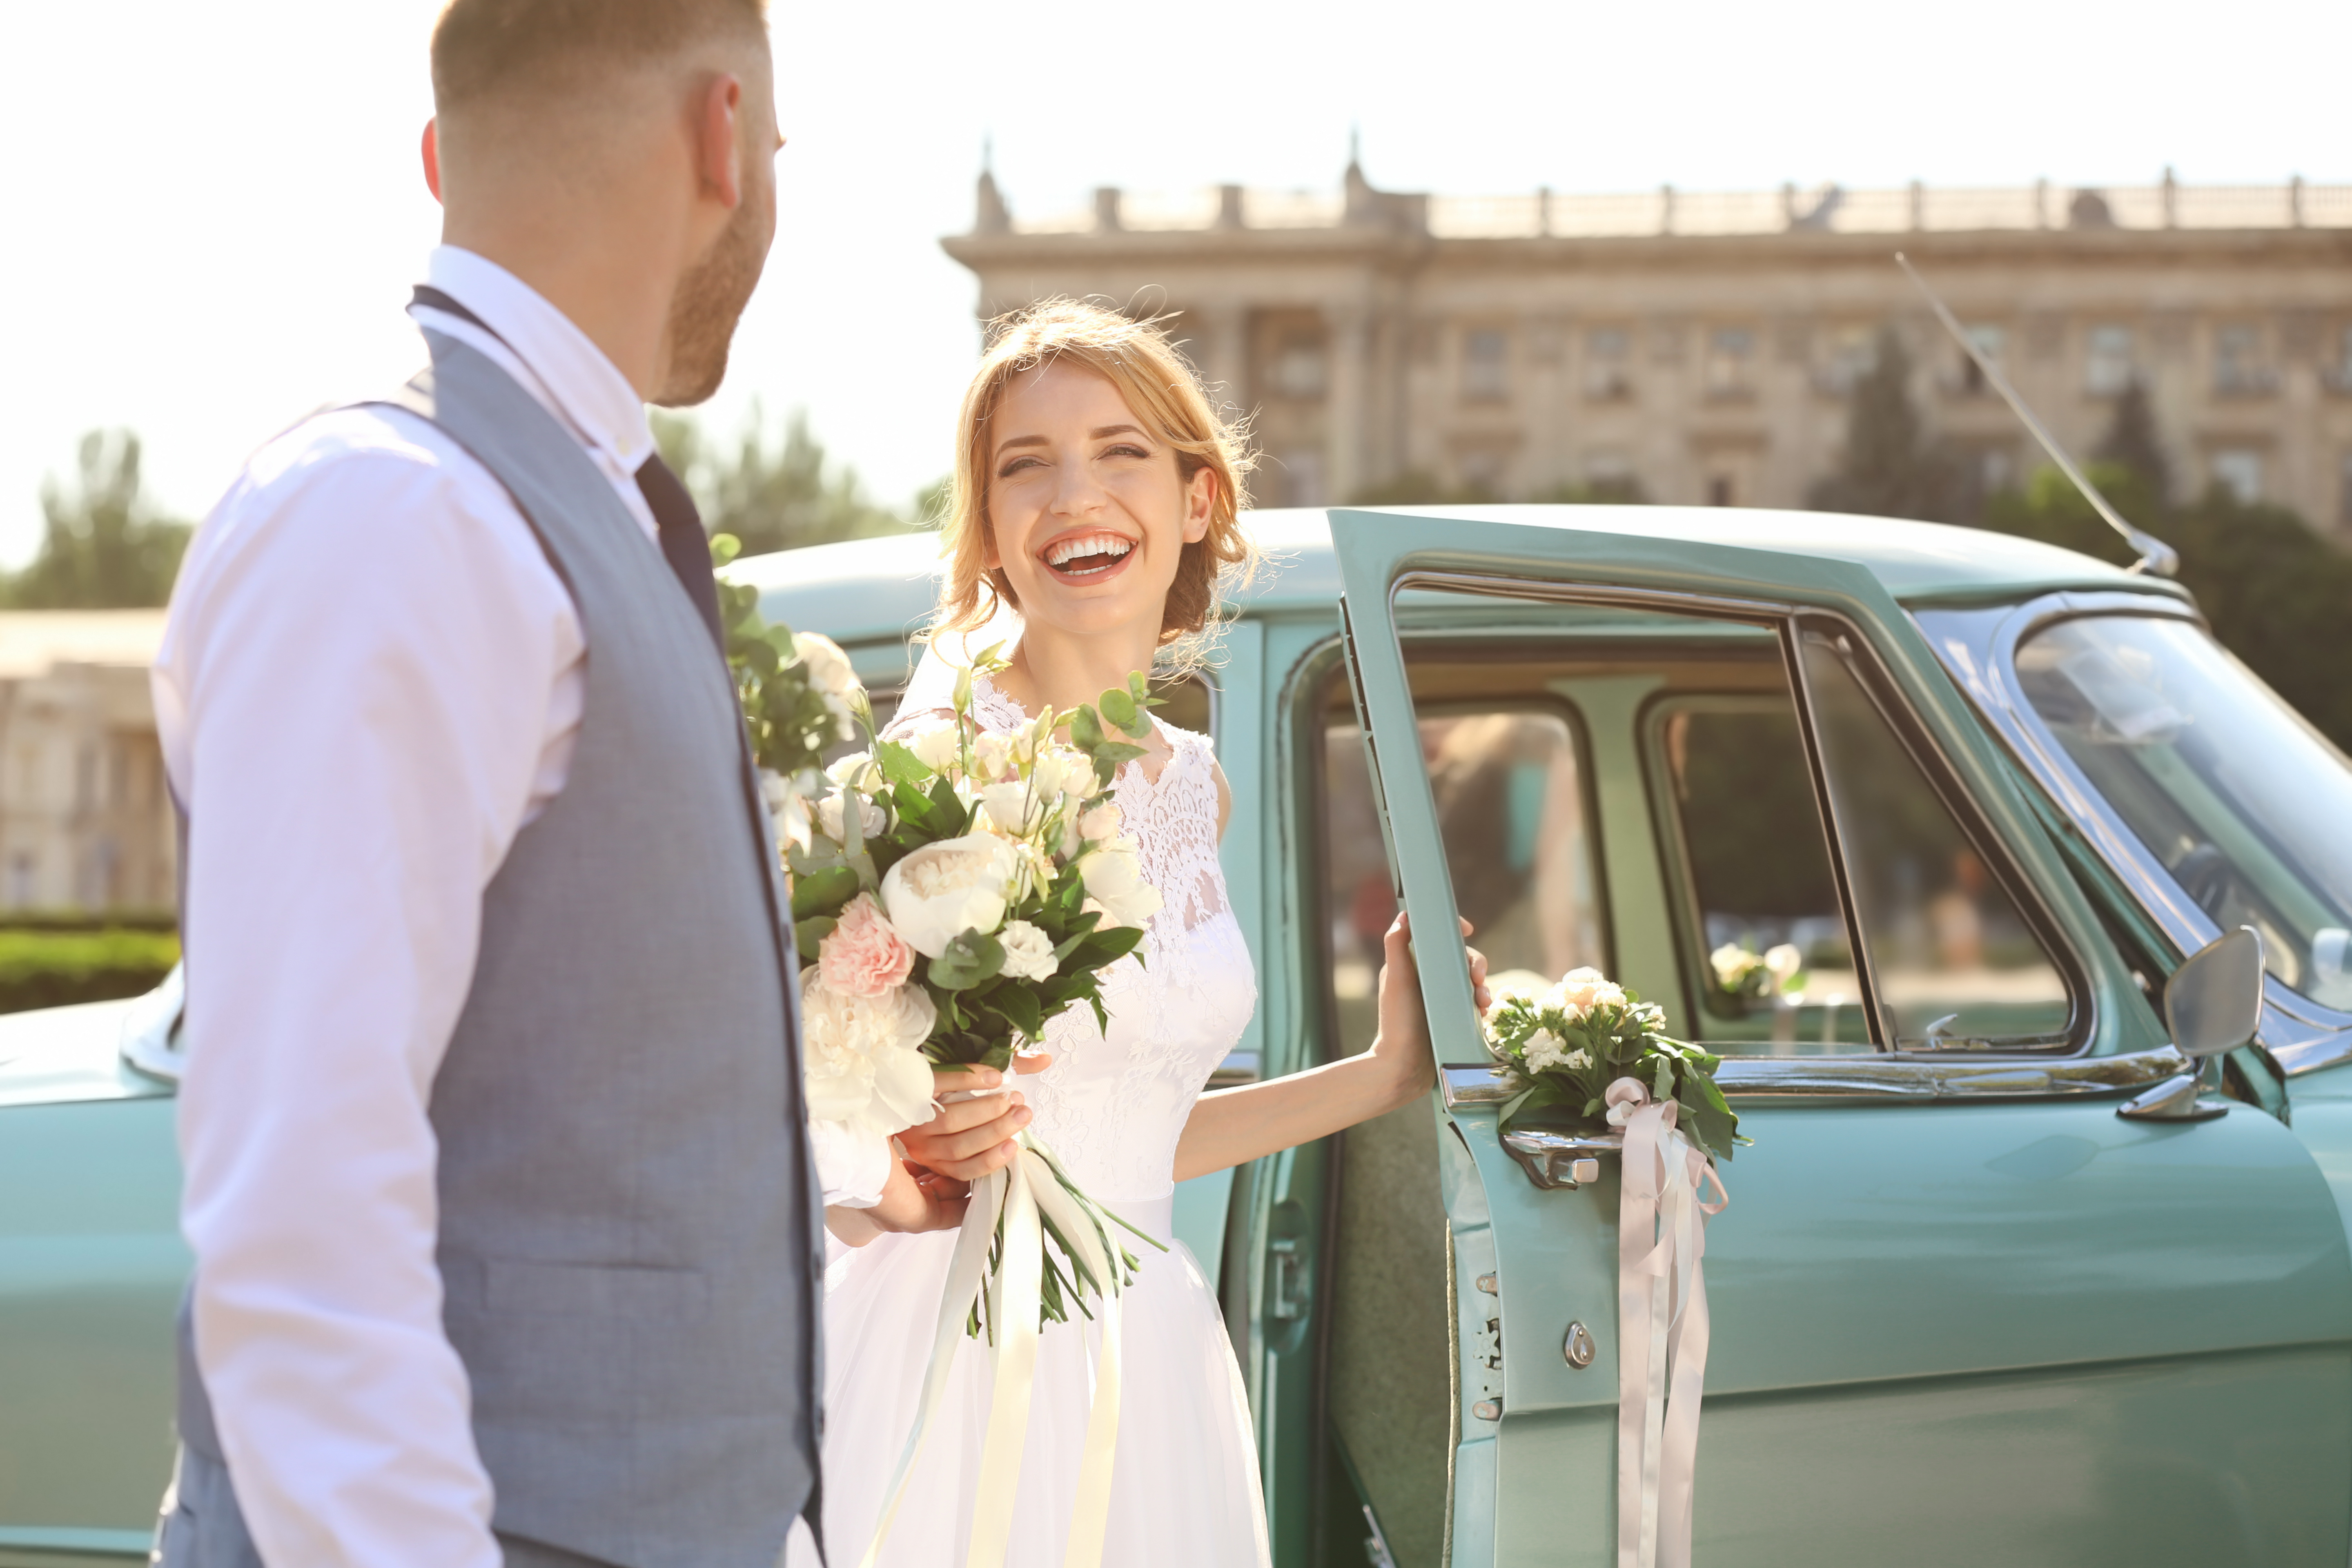 Happy wedding couple near decorated car outdoors